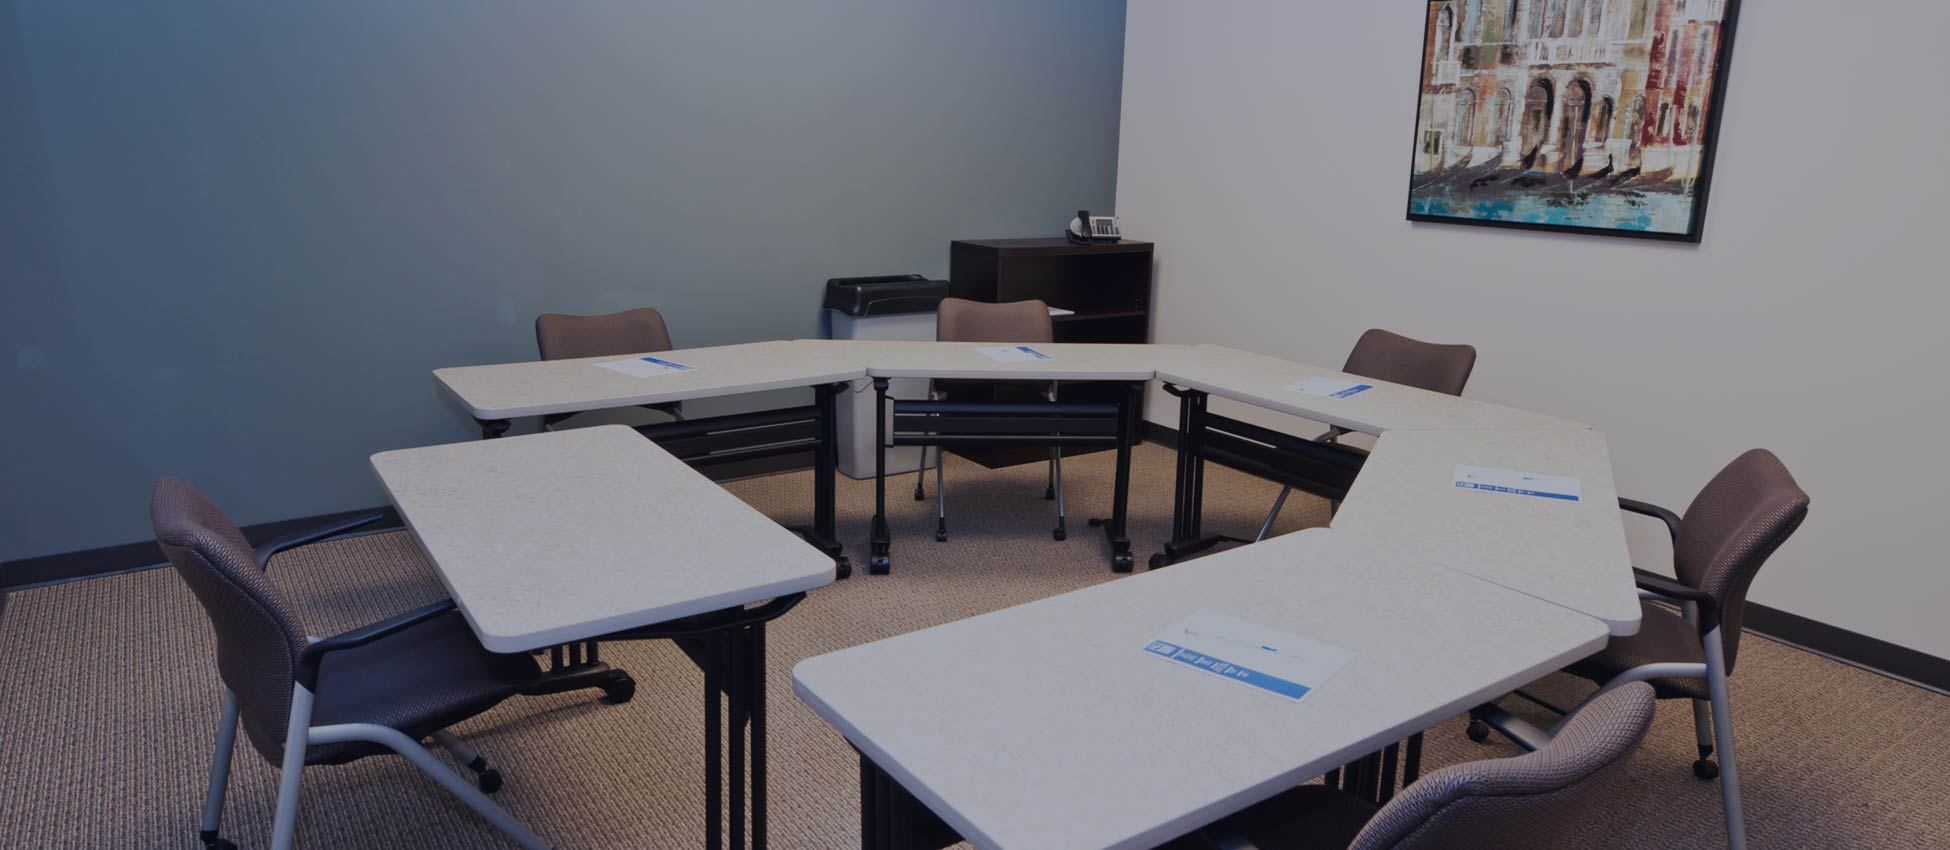 pacific-workplaces-carlsbad-office-space-conference-room